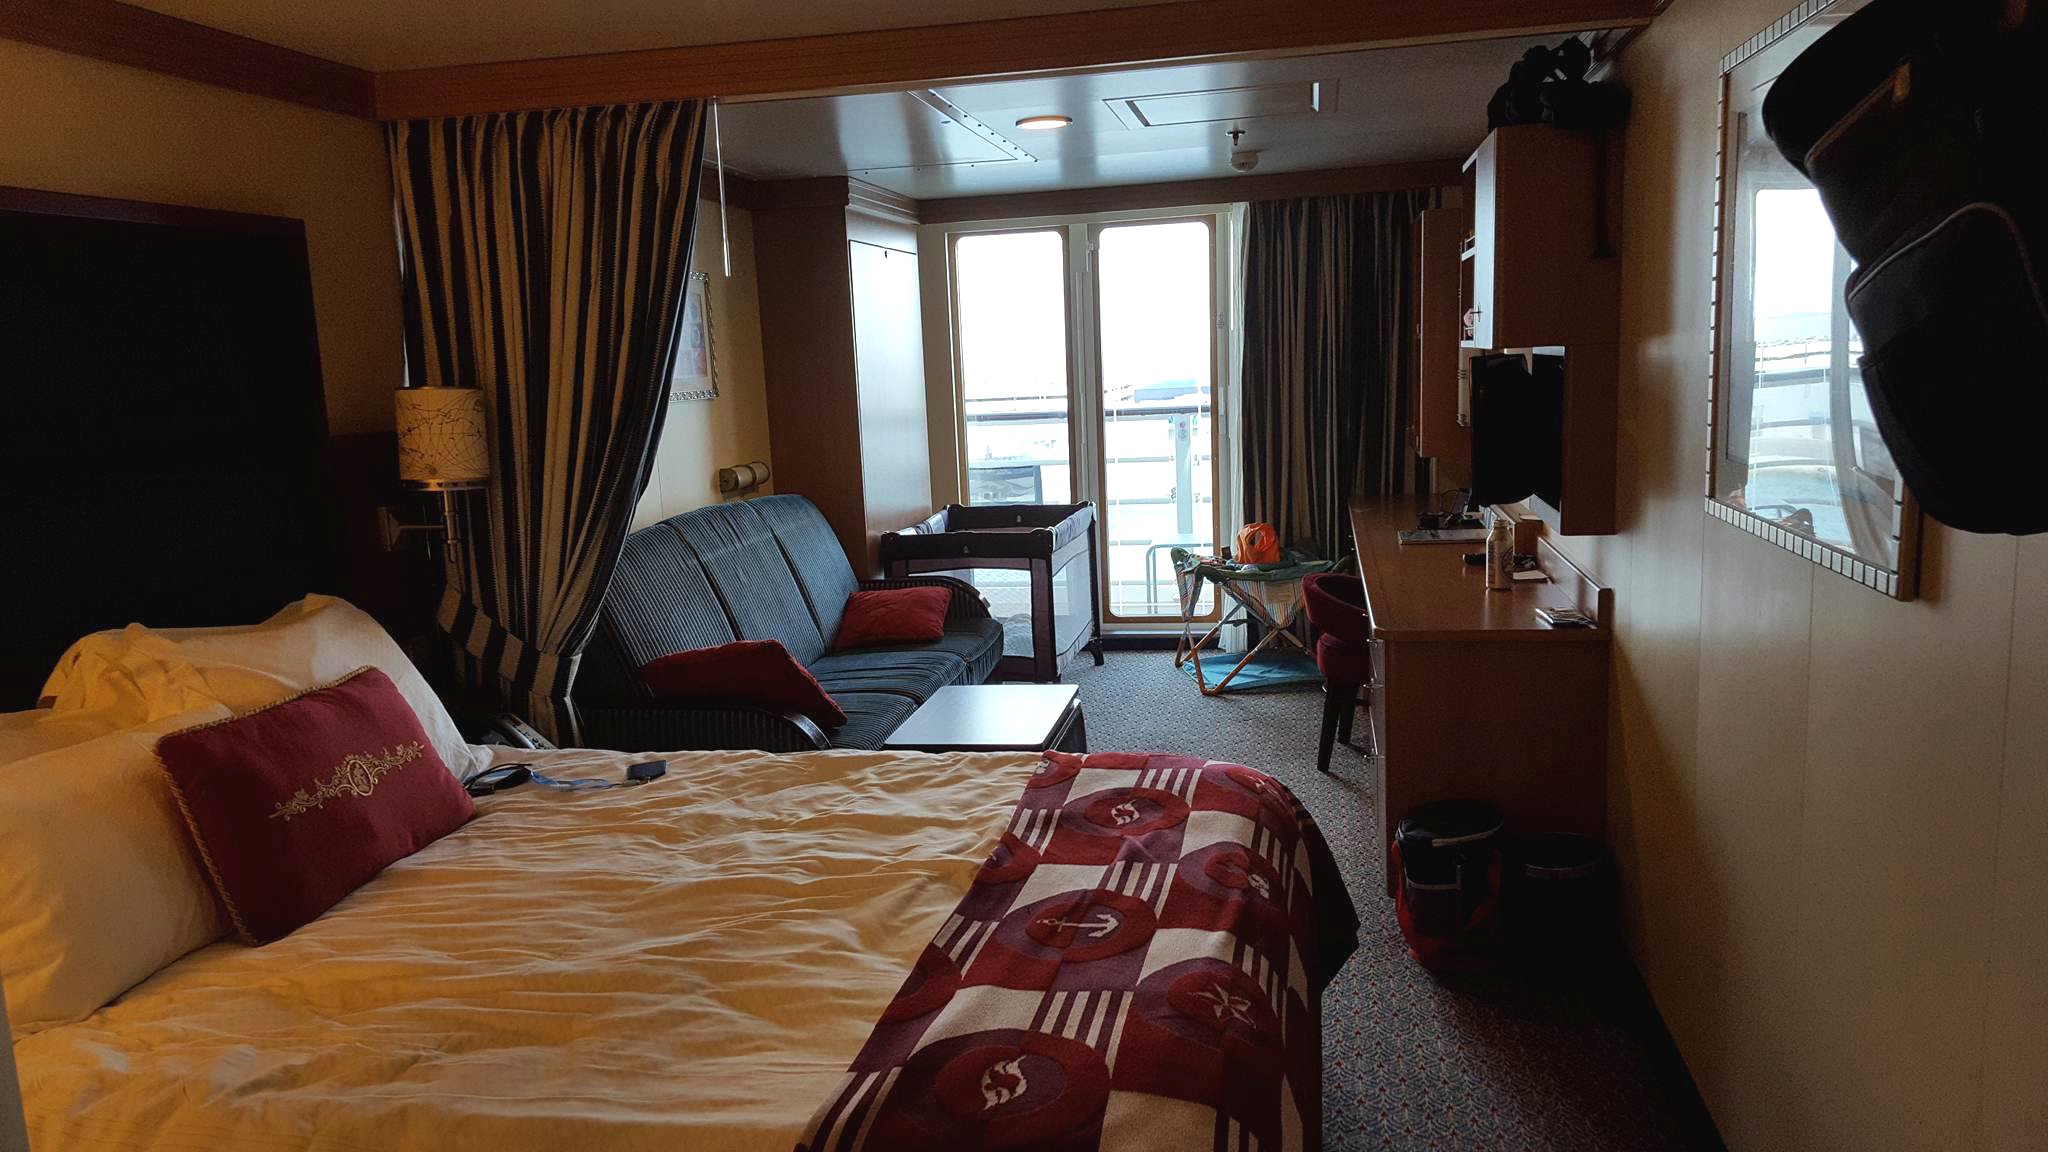 disney dream sofa bed leather sectional covers room 7128 cruise mom blog deluxe family oceanview with a verandah